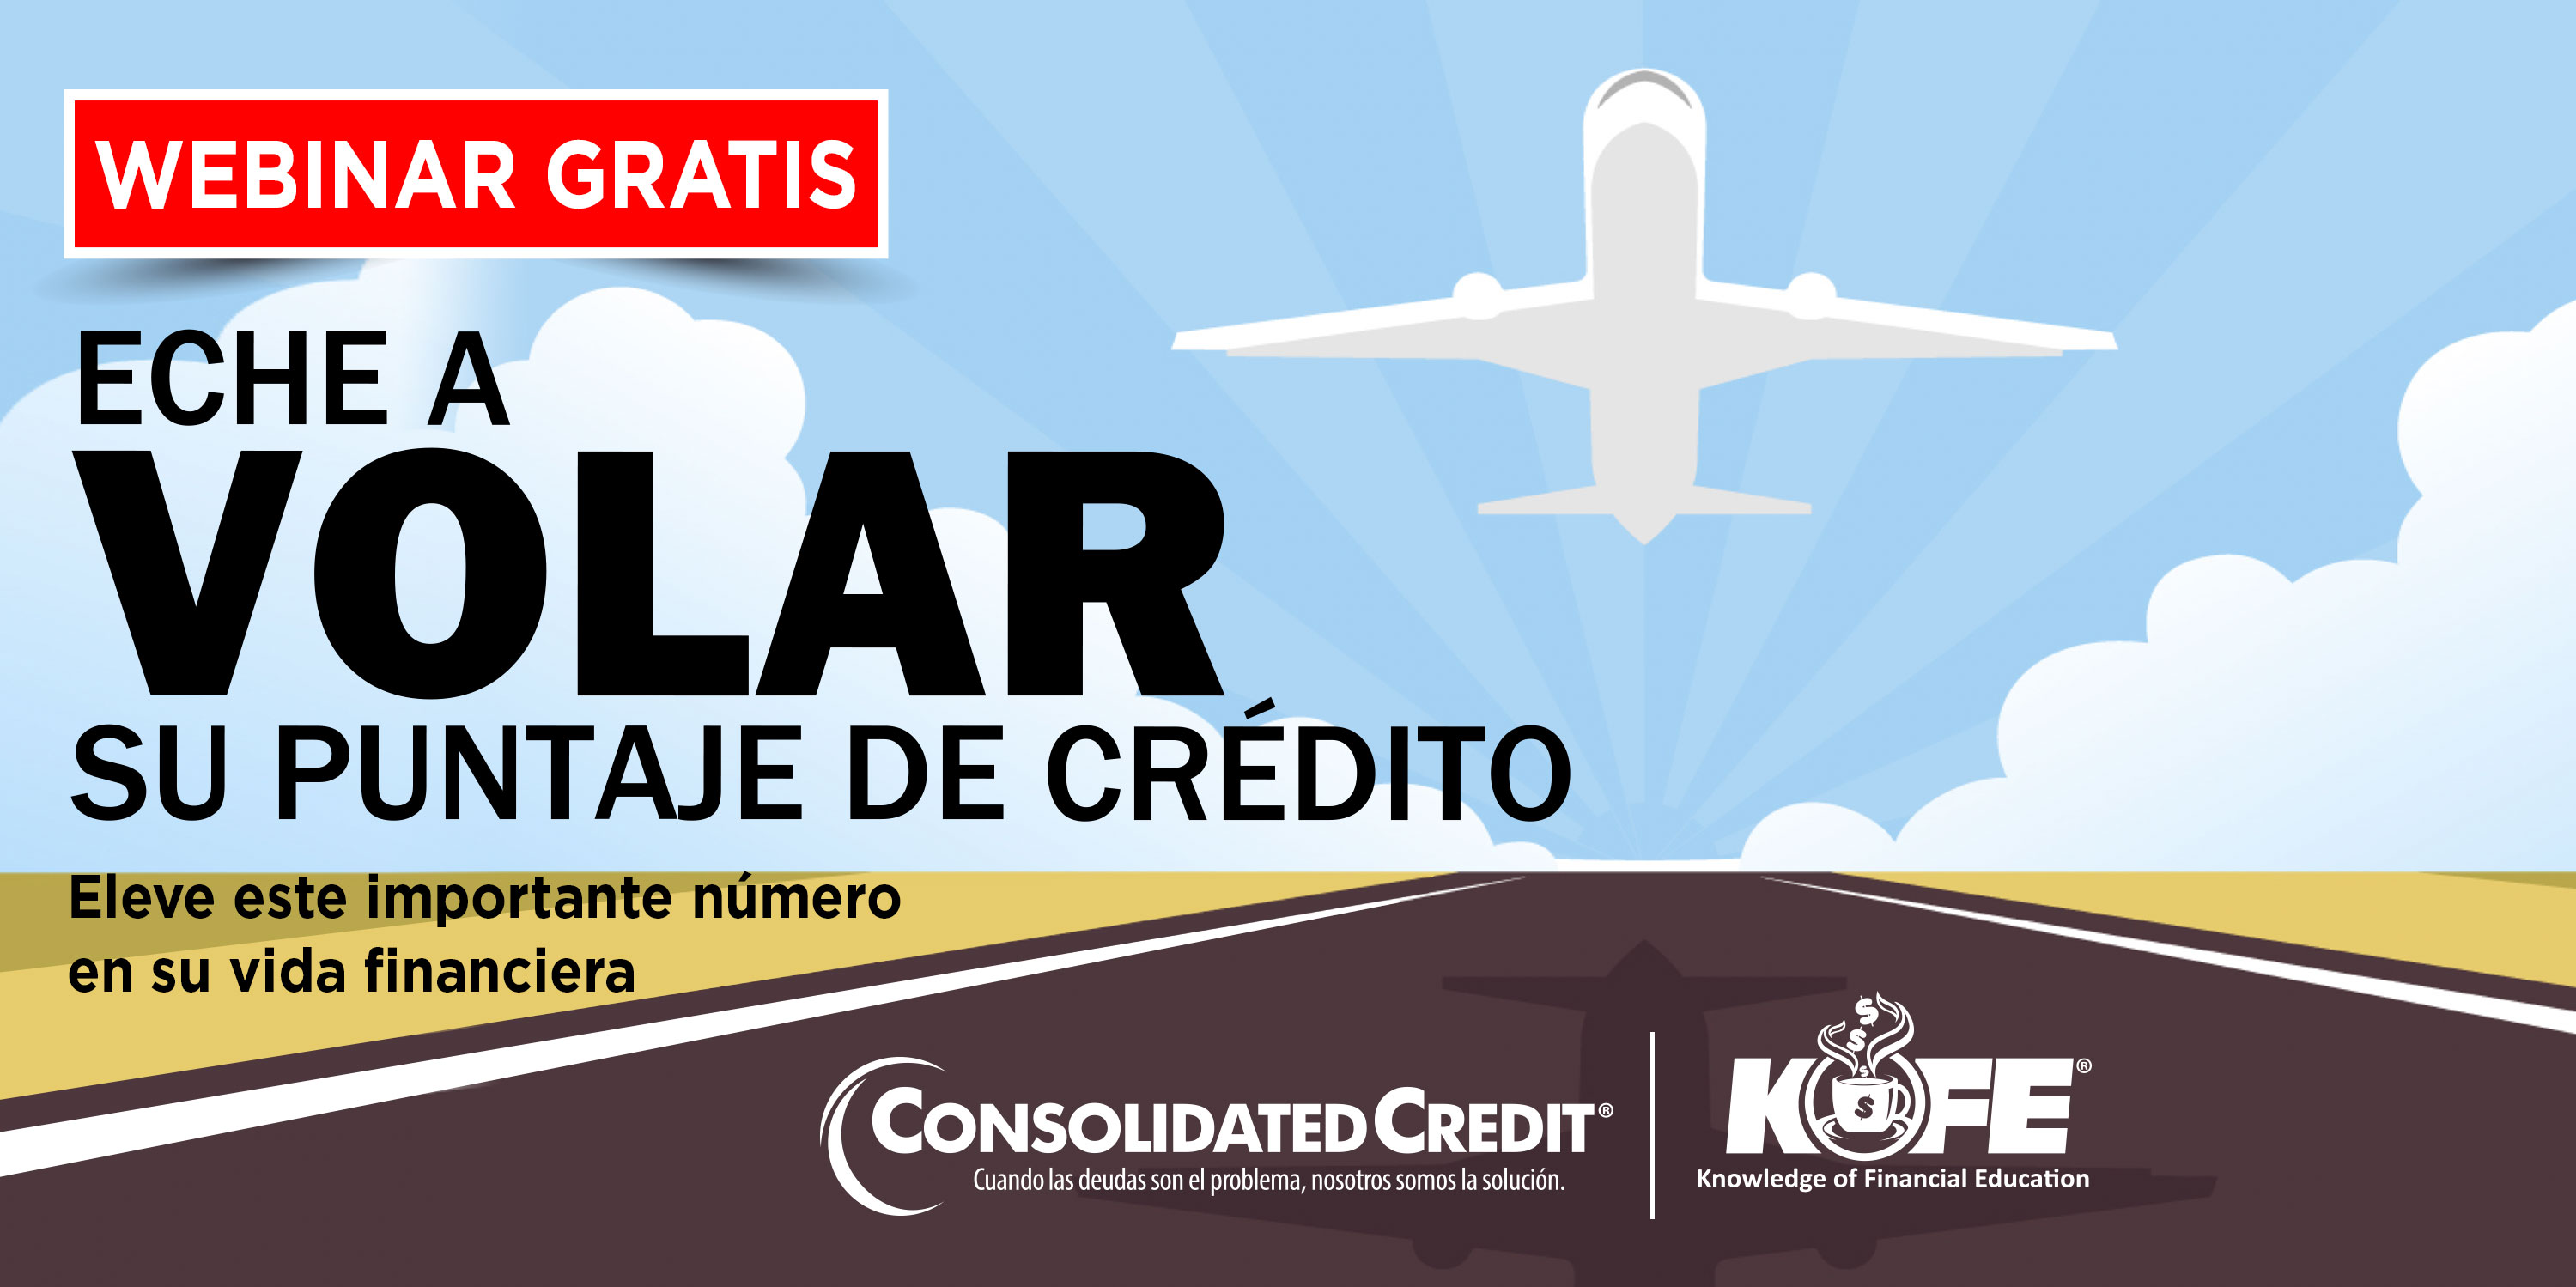 https://www.consolidatedcredit.org/es/wp-content/uploads/2020/07/Aug-5-Make-your-Crd-score_CC-Kofe-Webinar_3000x1499_ES-2020.jpg